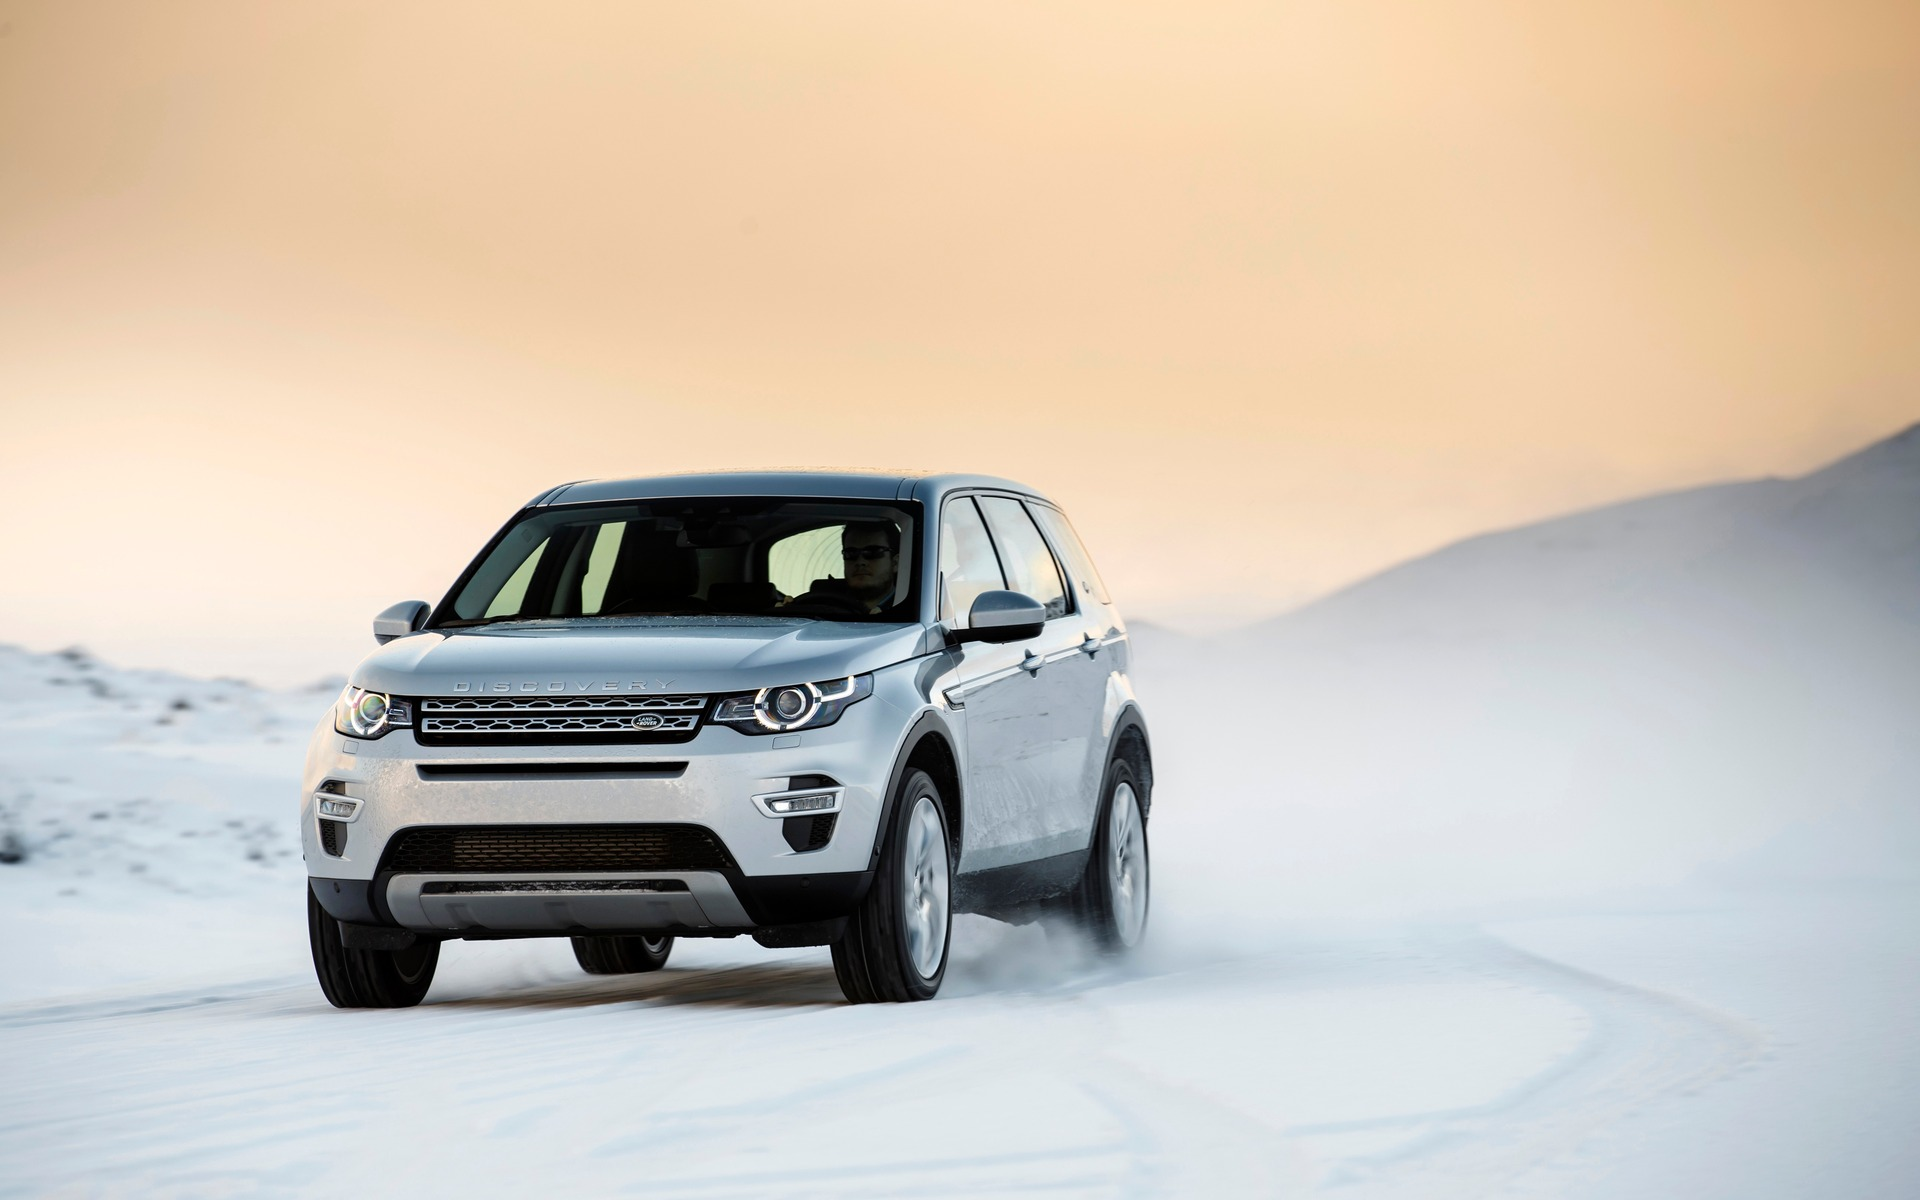 2015 Land Rover Discovery Sport Built For Versatility 43 44